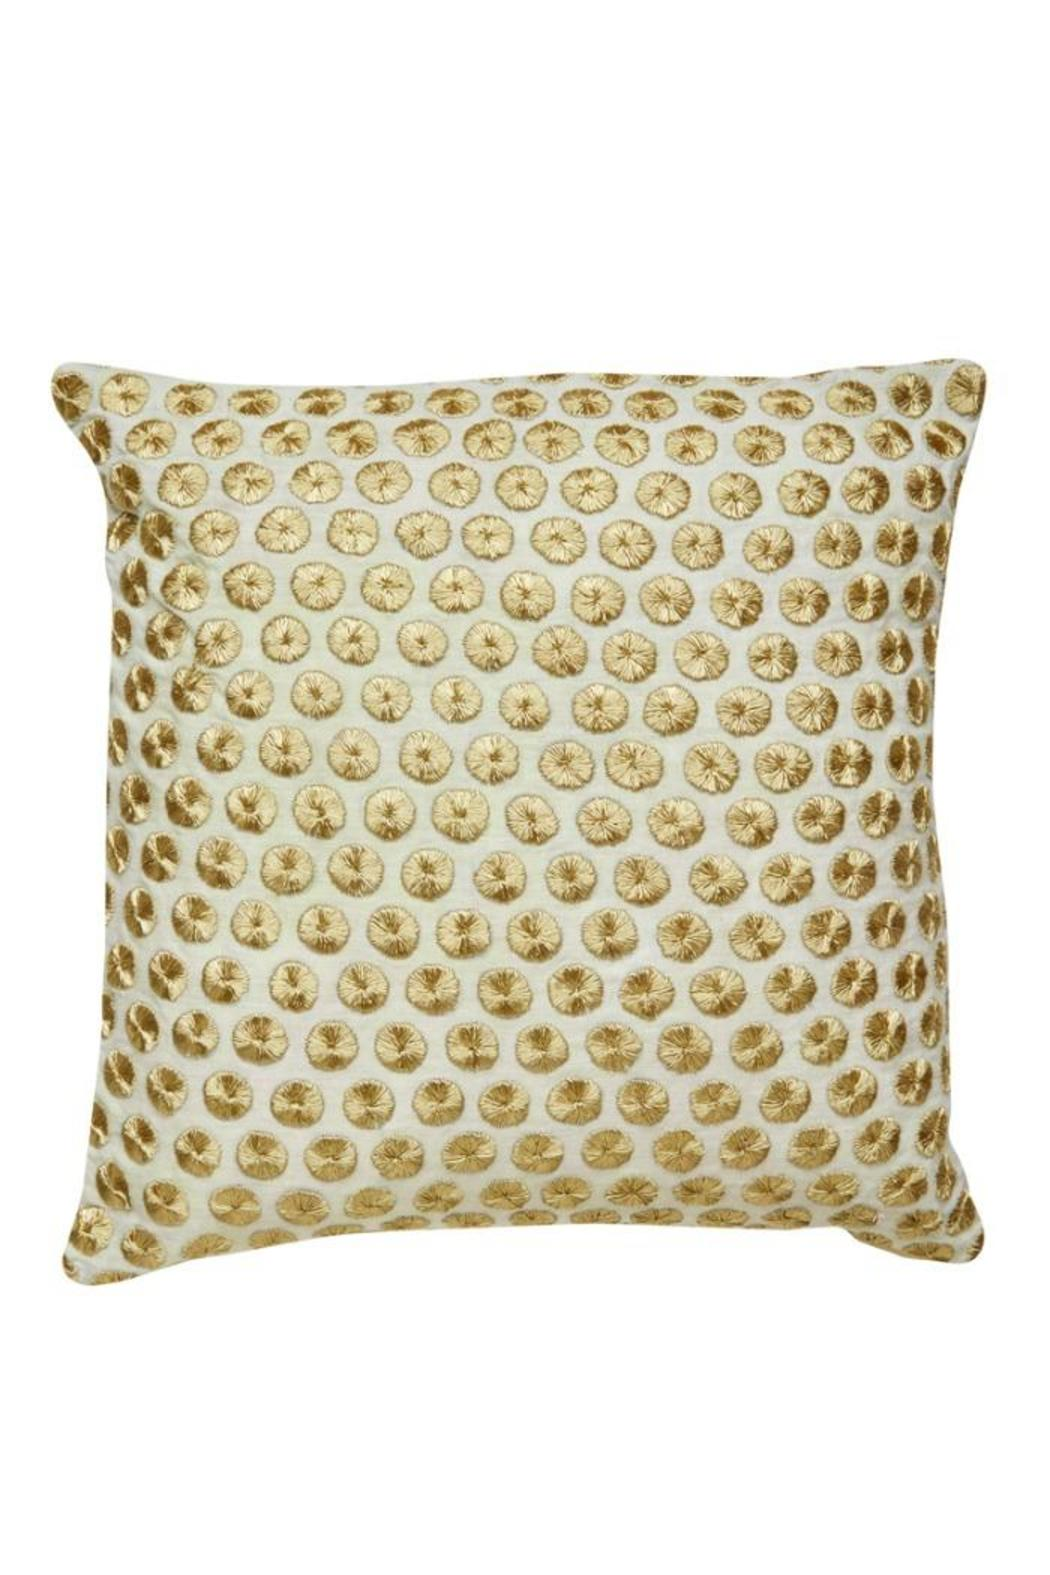 spade s york macy x pillow decorative hello pin collections bedding kate pillows bath want new bed